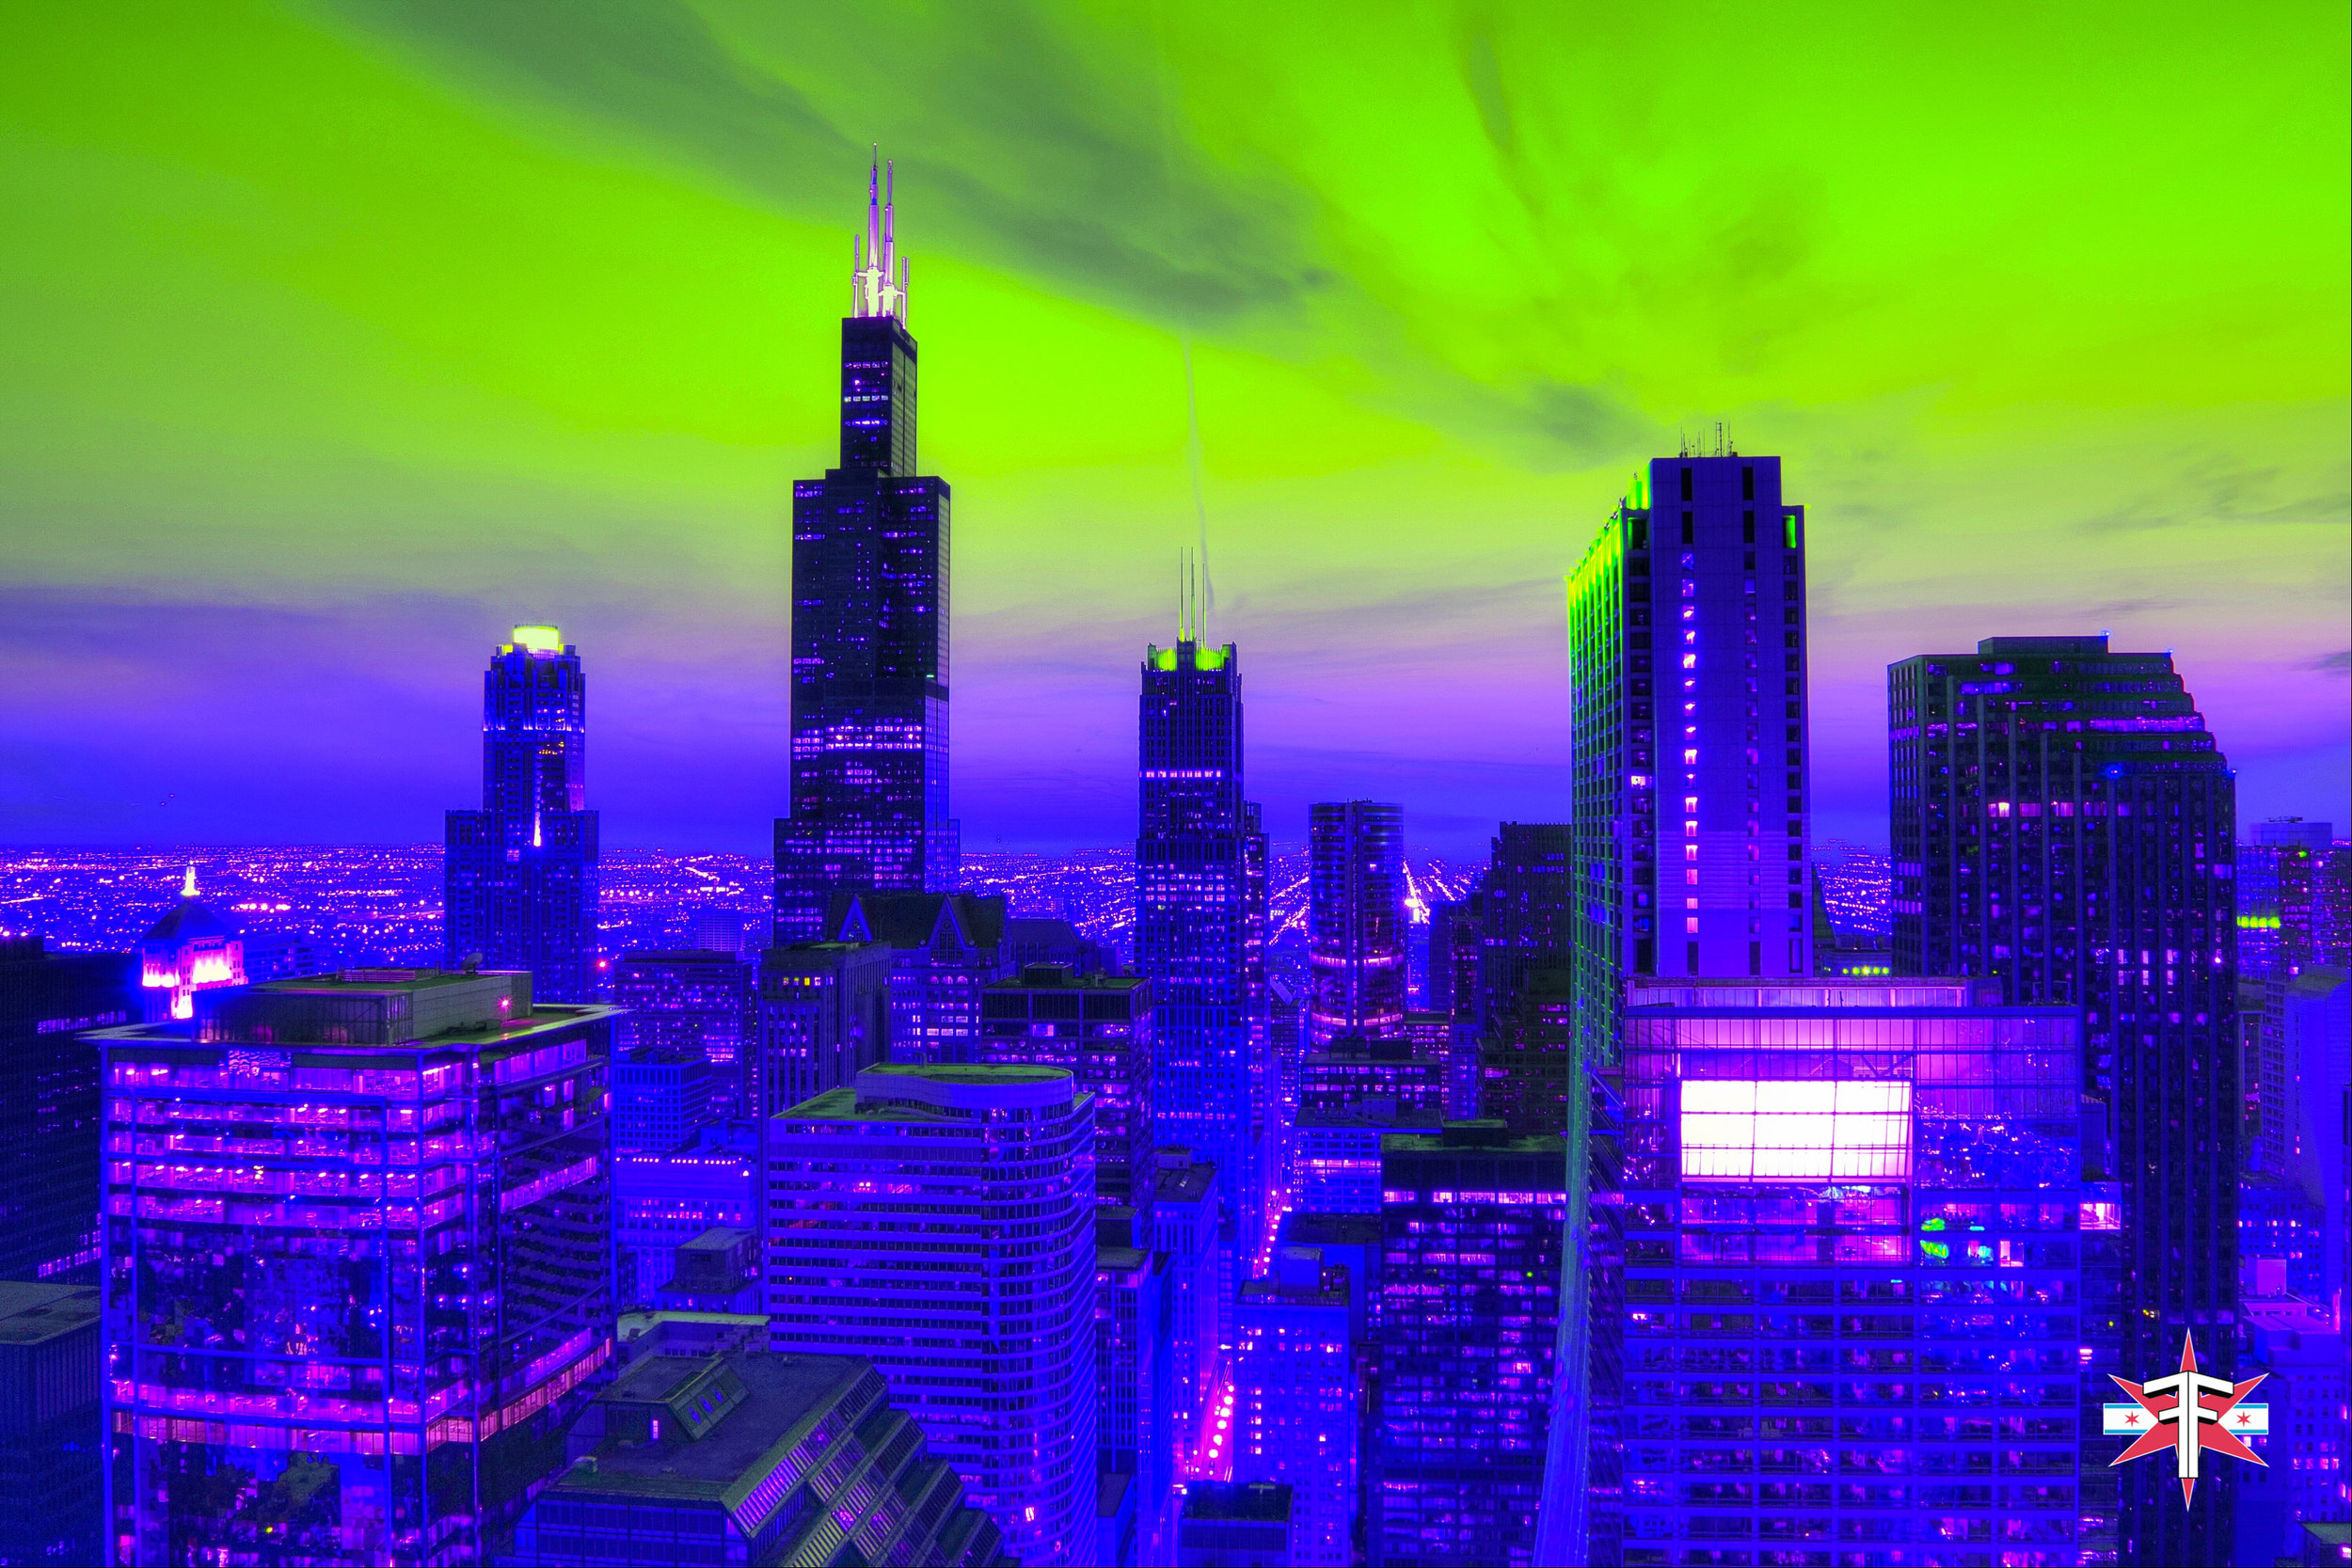 chicago art abstract eric formato photography color travel cityscape architecture saturated citycapes bright vibrant artistic-16.jpg